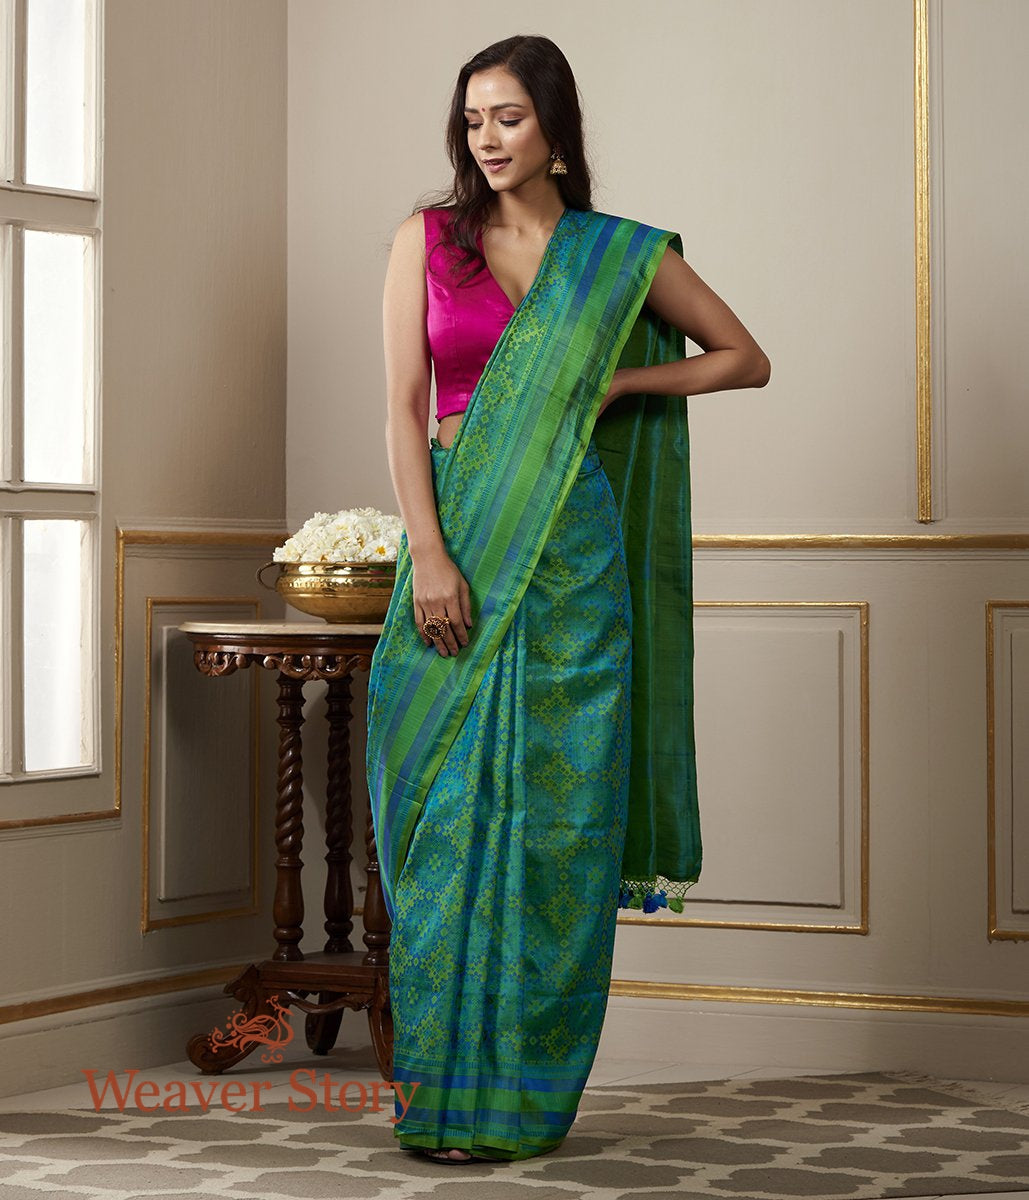 Handwoven Banarasi Tanchoi Saree in Shades of Green